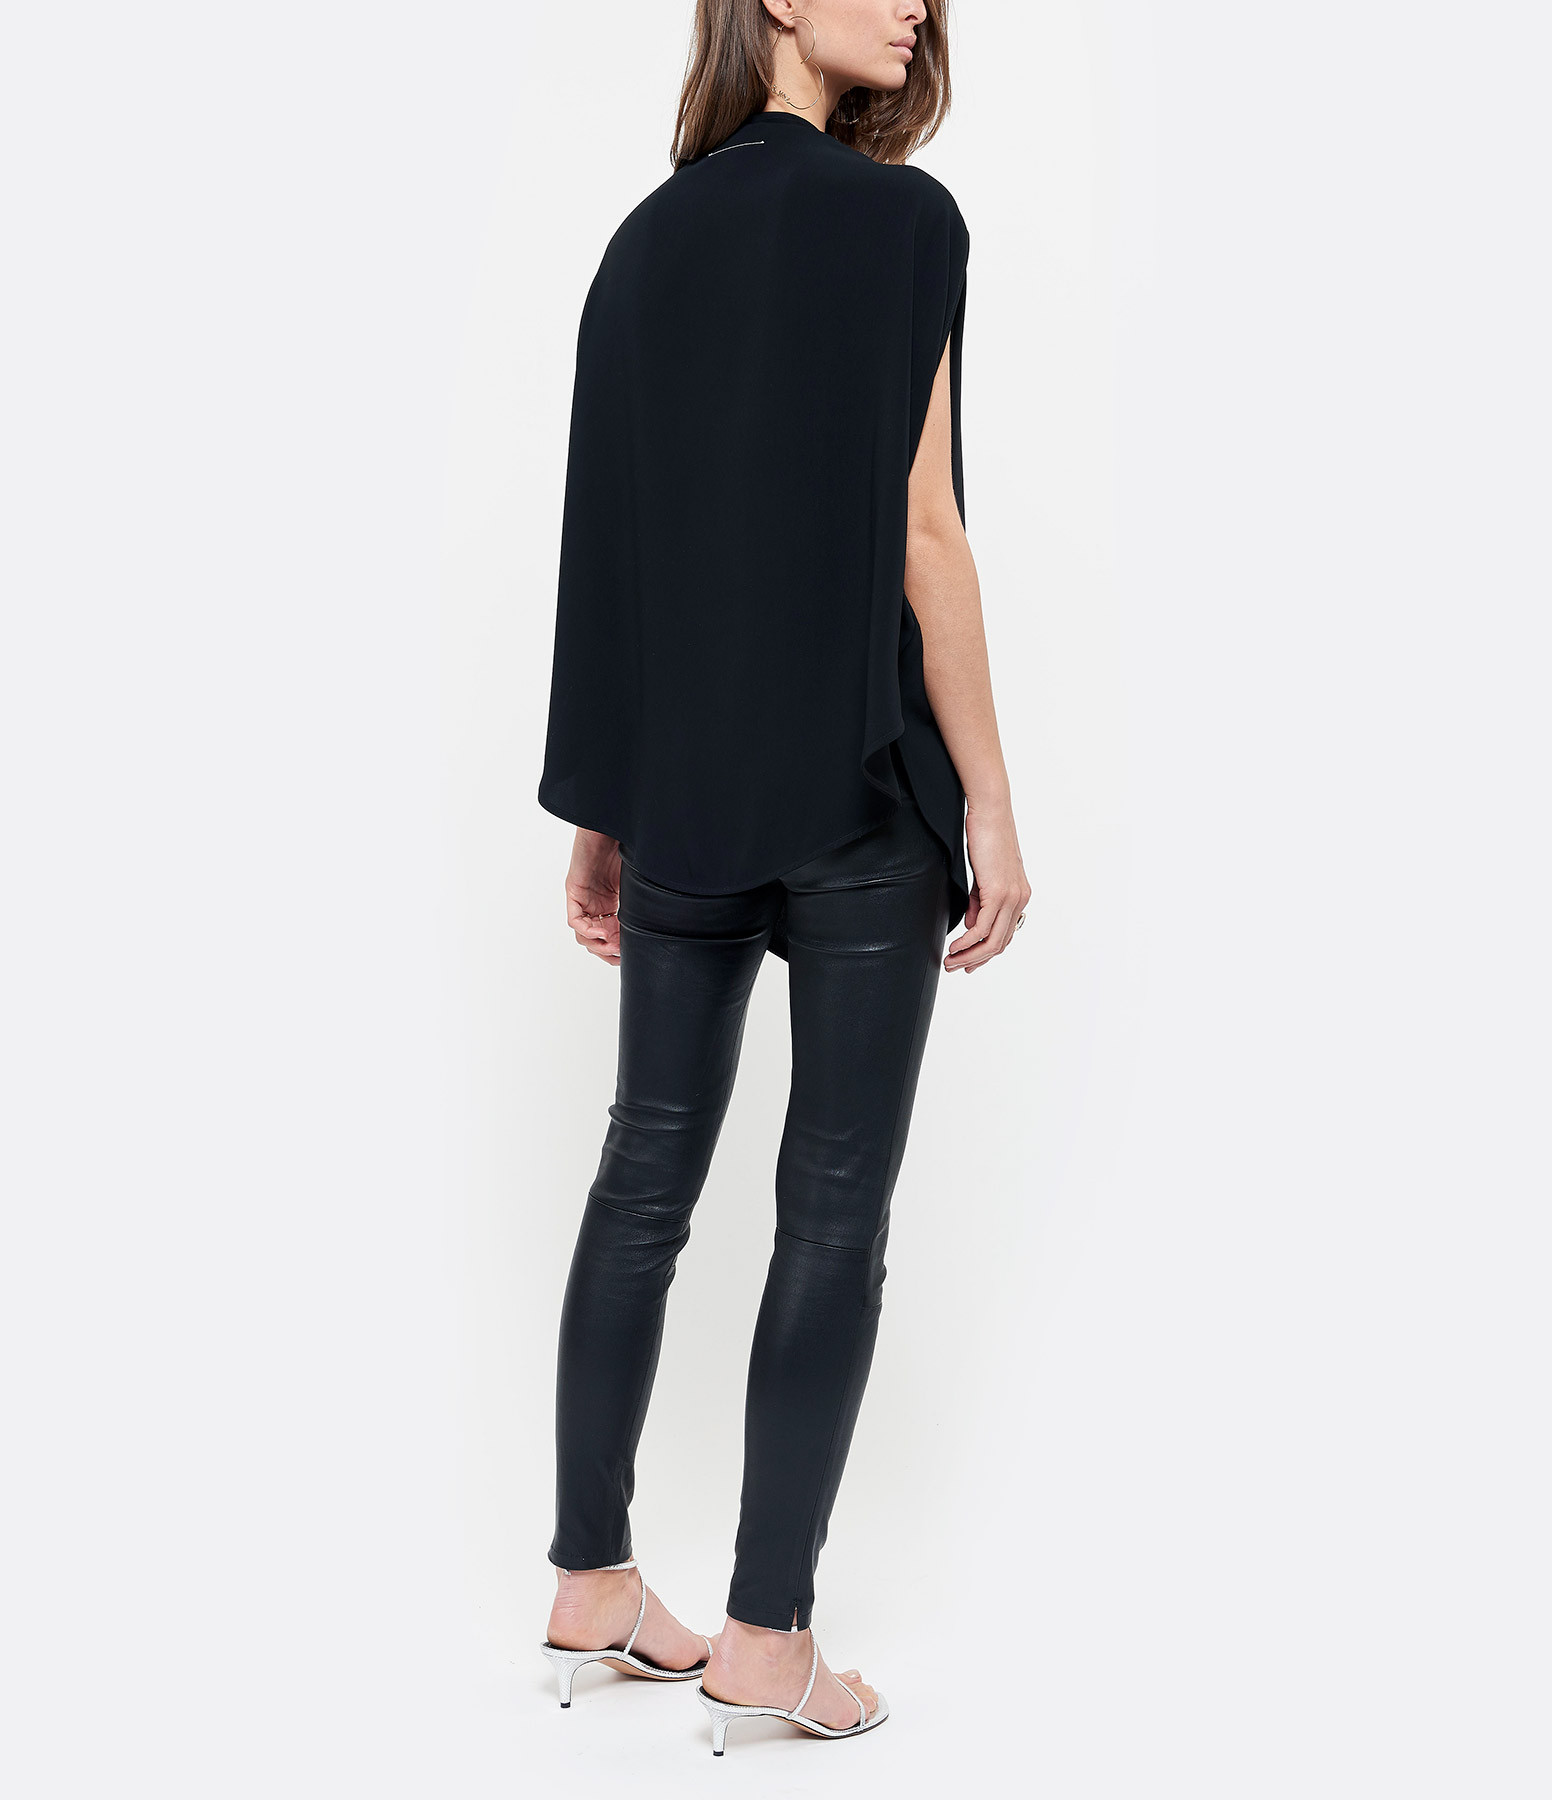 MM6 MAISON MARGIELA - Top Loose Noir, Collection Studio